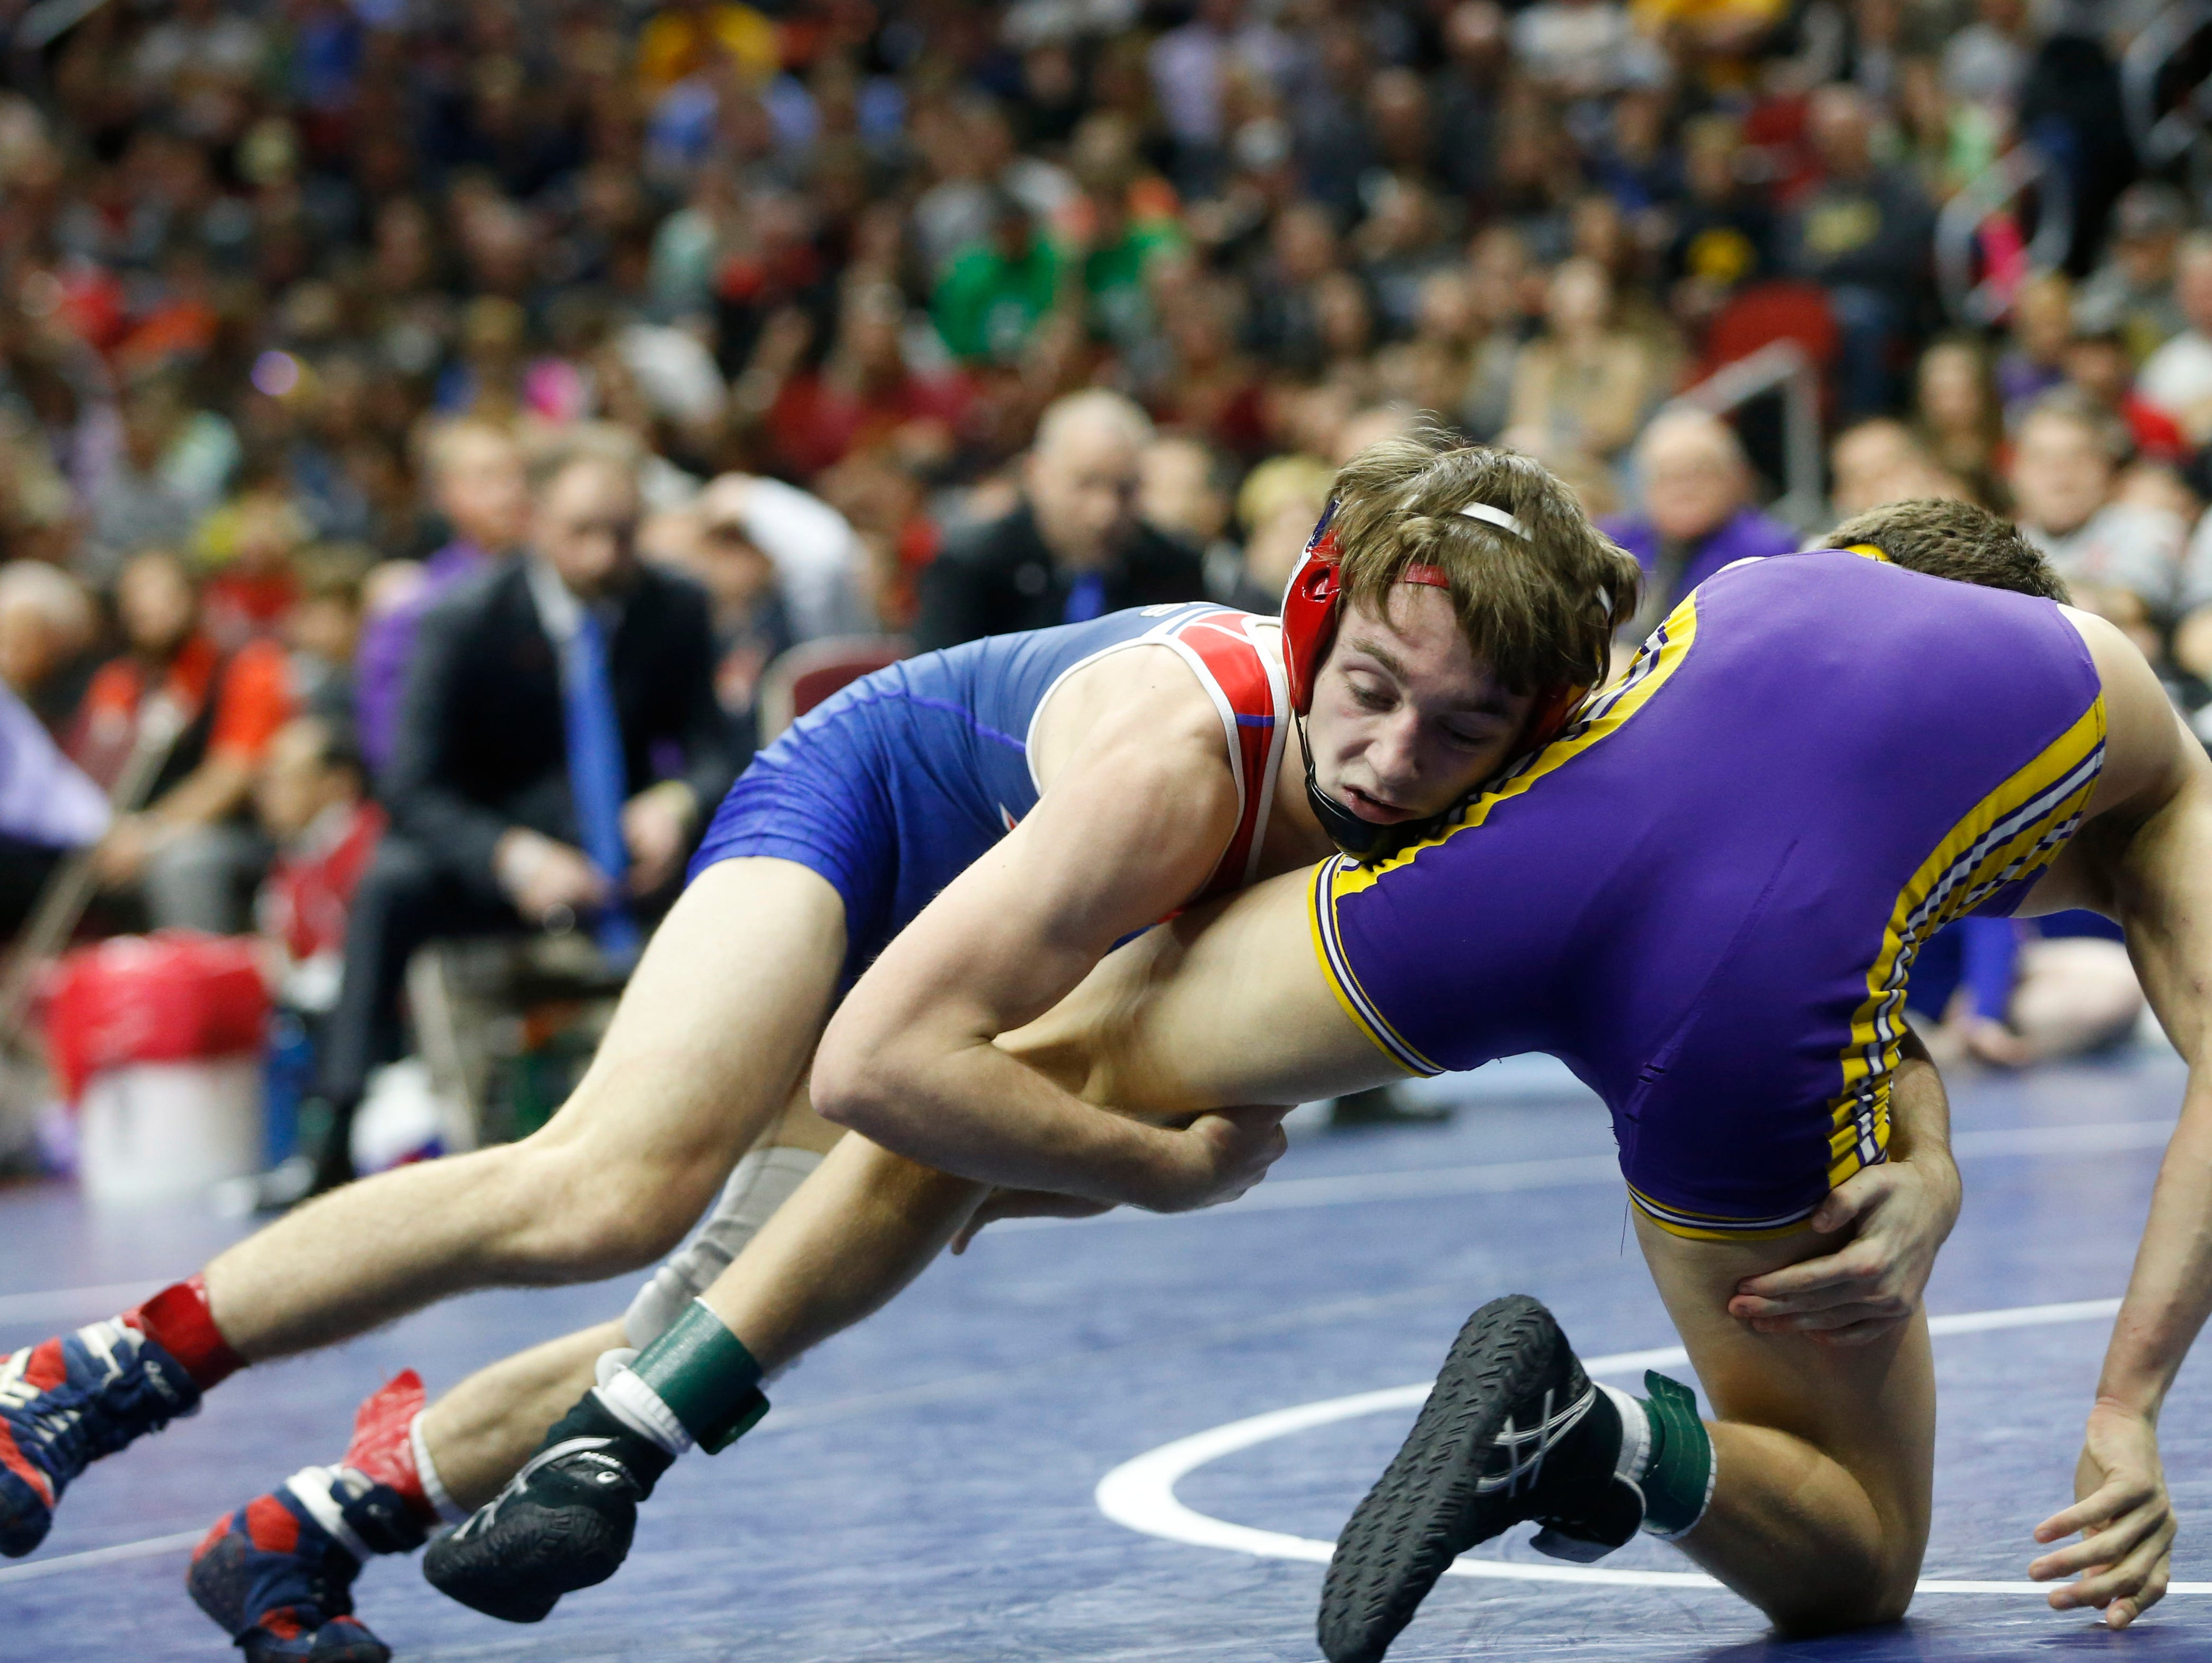 AlbiaÕs Aden Reeves wrestles Webster CityÕs Drake Doolittle in the class 2A, 113-pound title match Saturday, Feb. 18, 2017 in the state wrestling finals at Wells Fargo Arena in Des Moines.